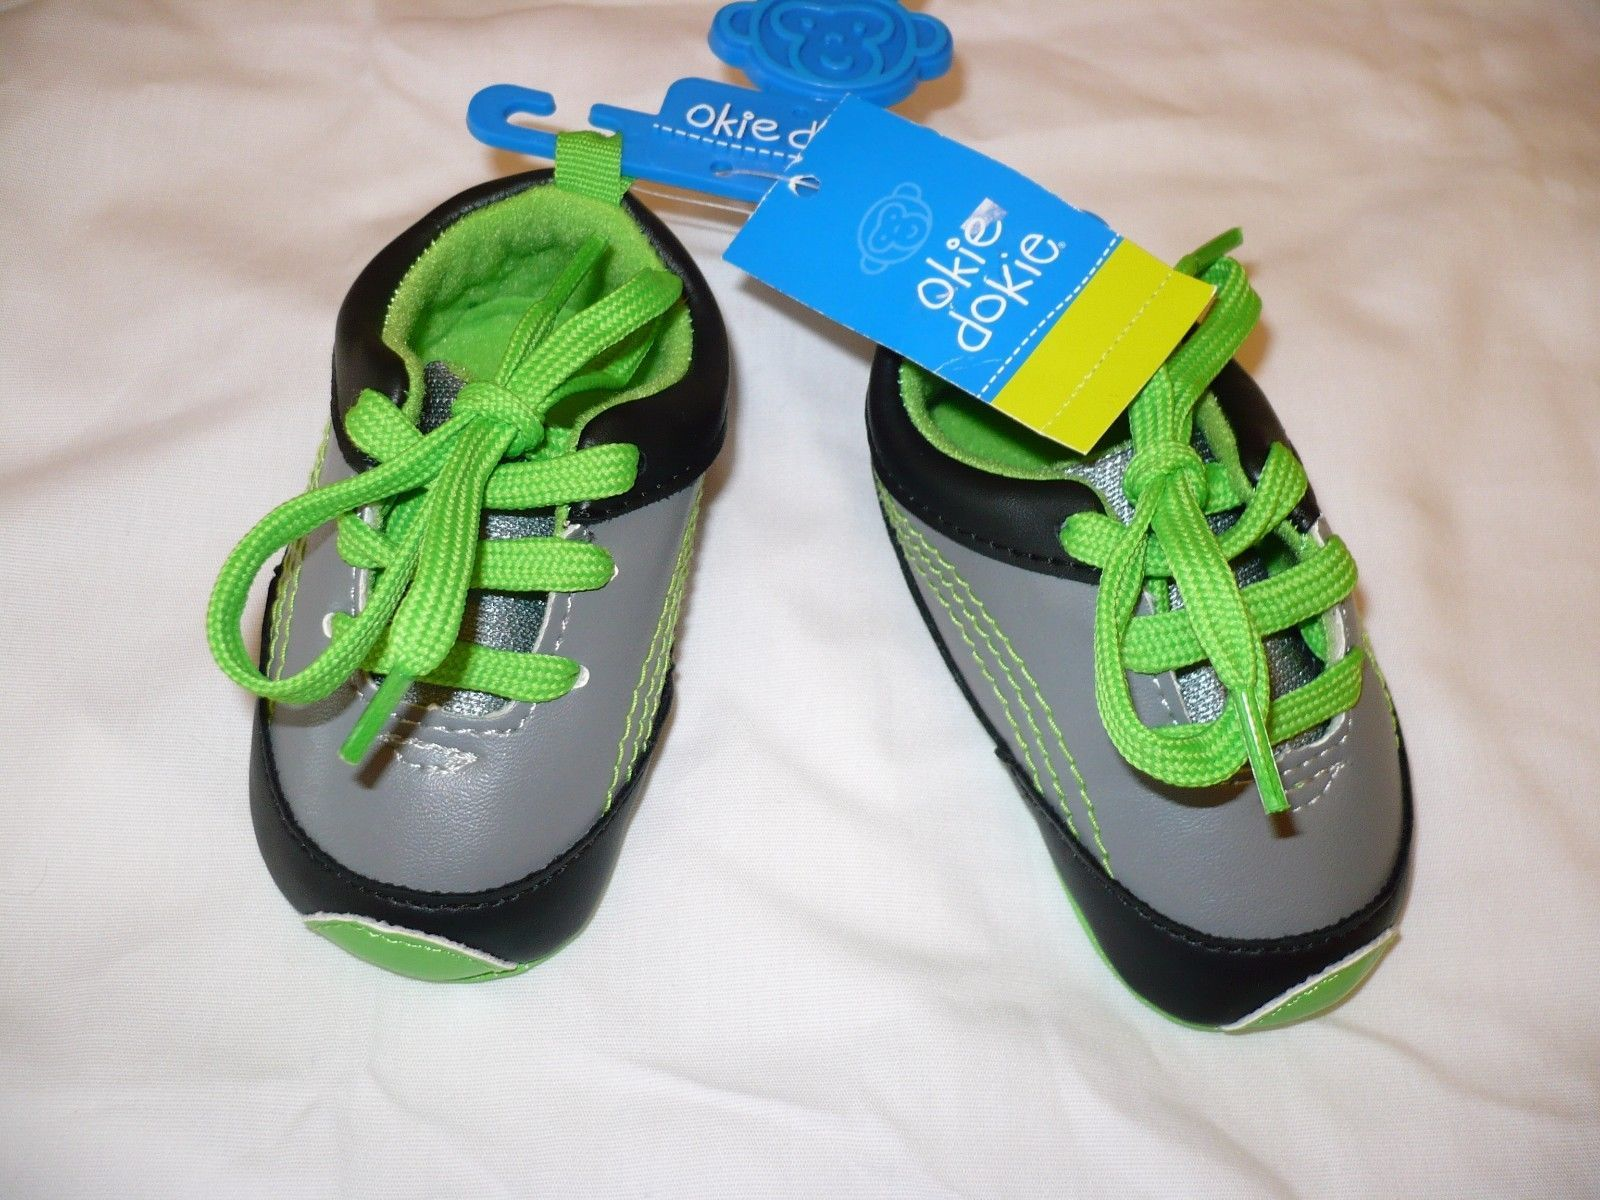 Boys Okie Dokie Slip Lace Up Shoes Baby and 32 similar items